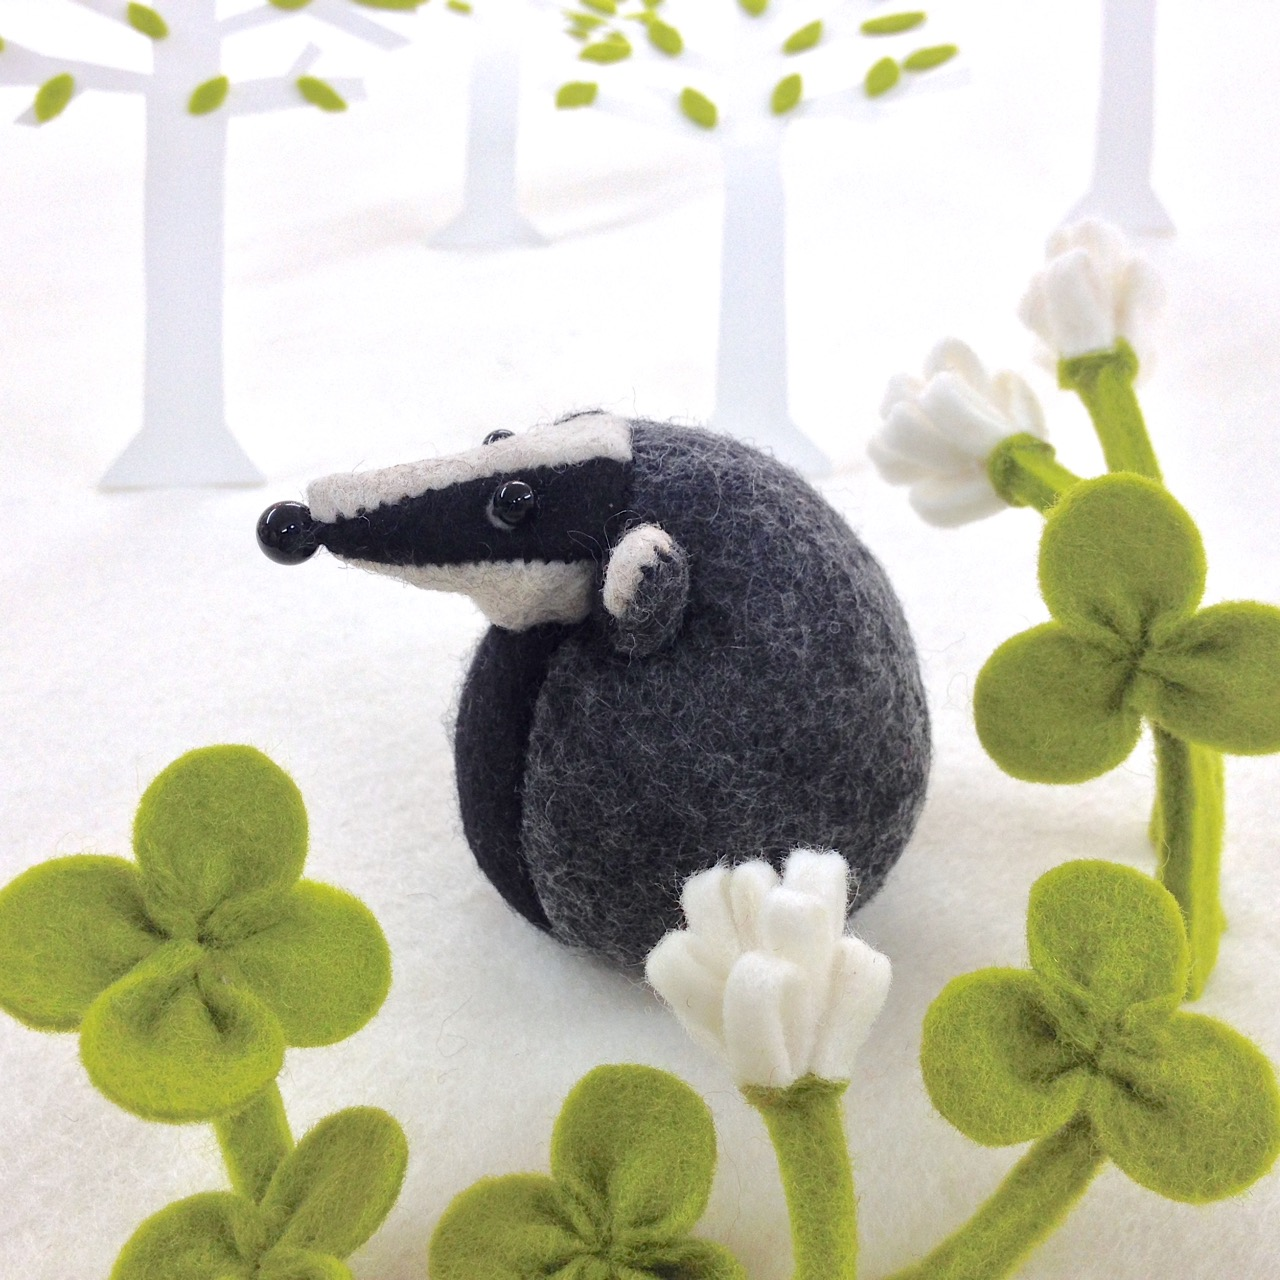 Handmade Bernard the Badger character from Bilberry Woods, handmade into a perfect little paperweight.